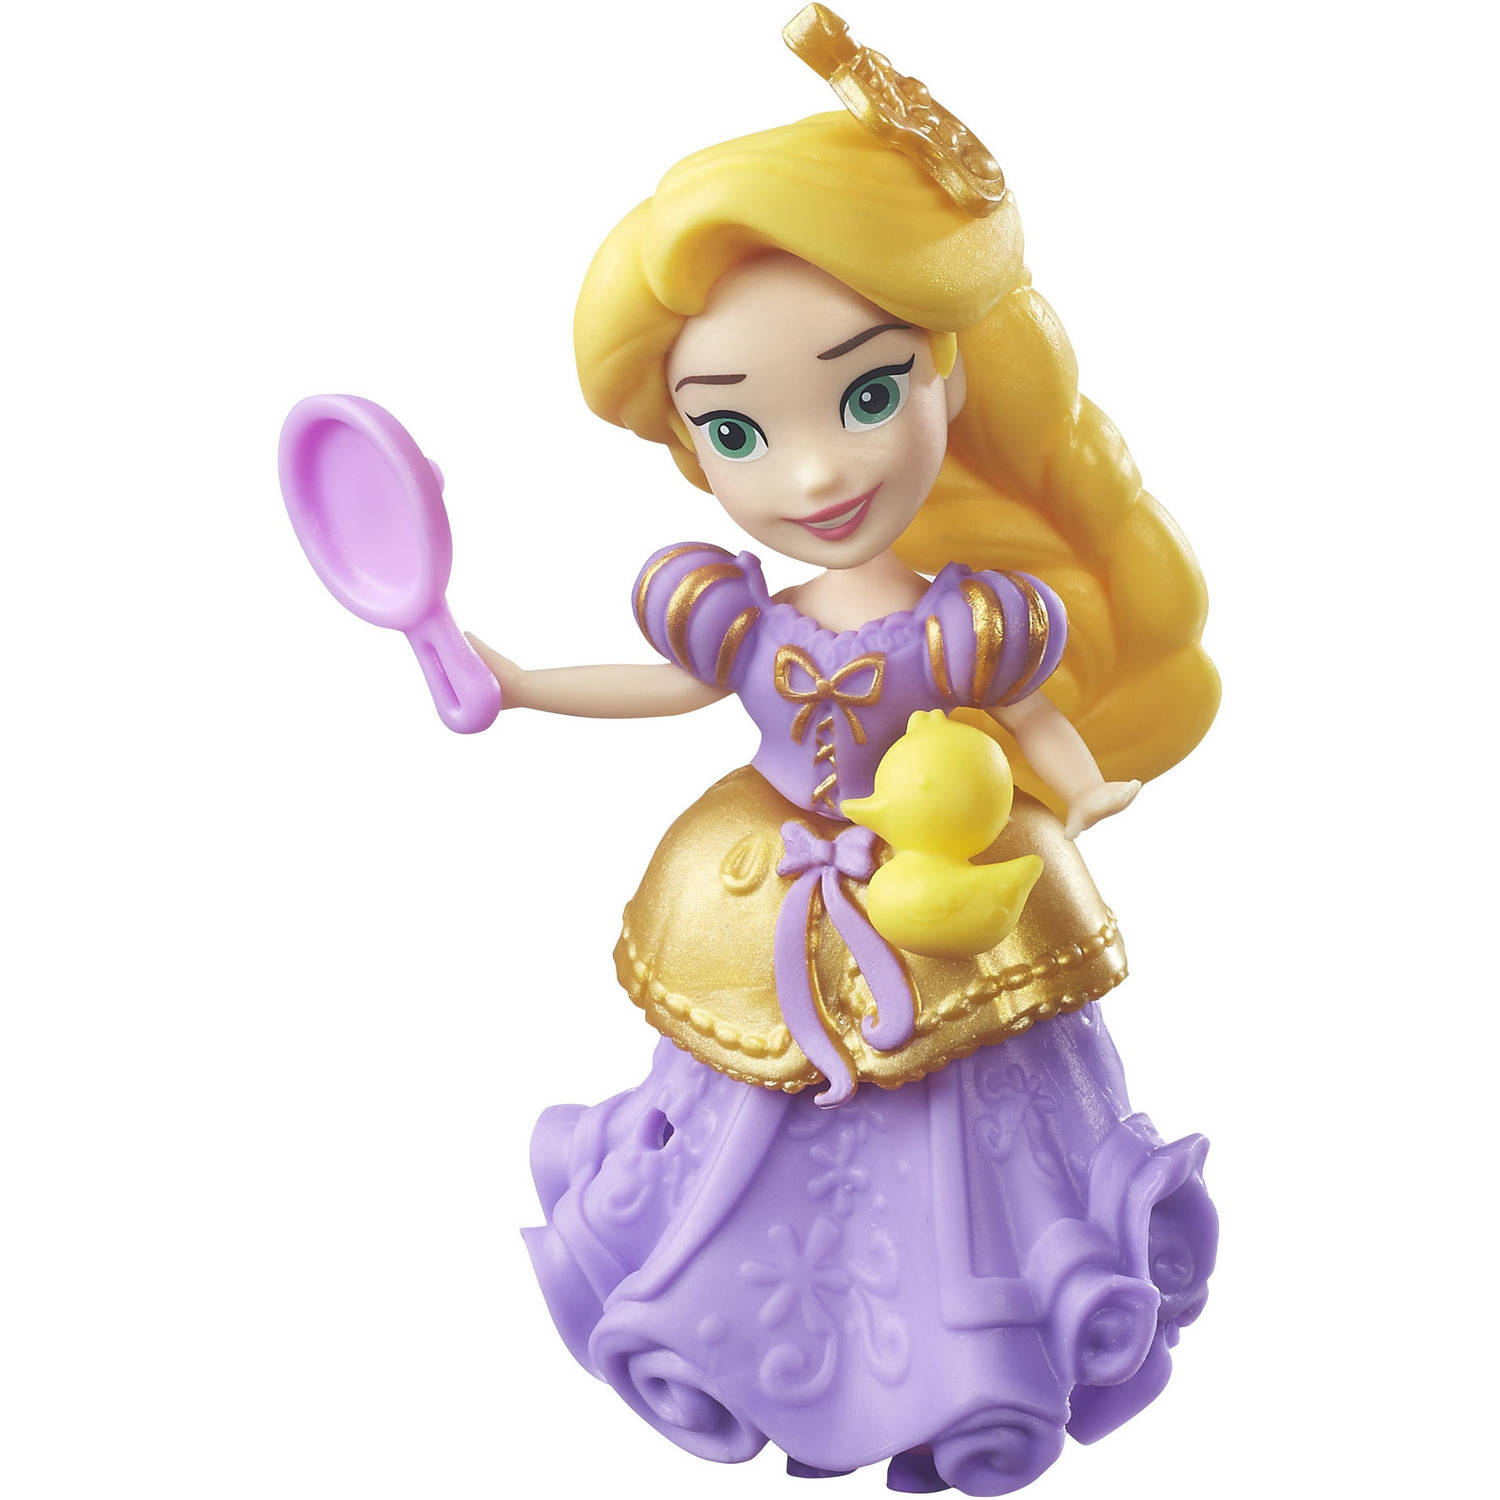 Disney Princess Little Kingdom Classic Rapunzel by Hasbro